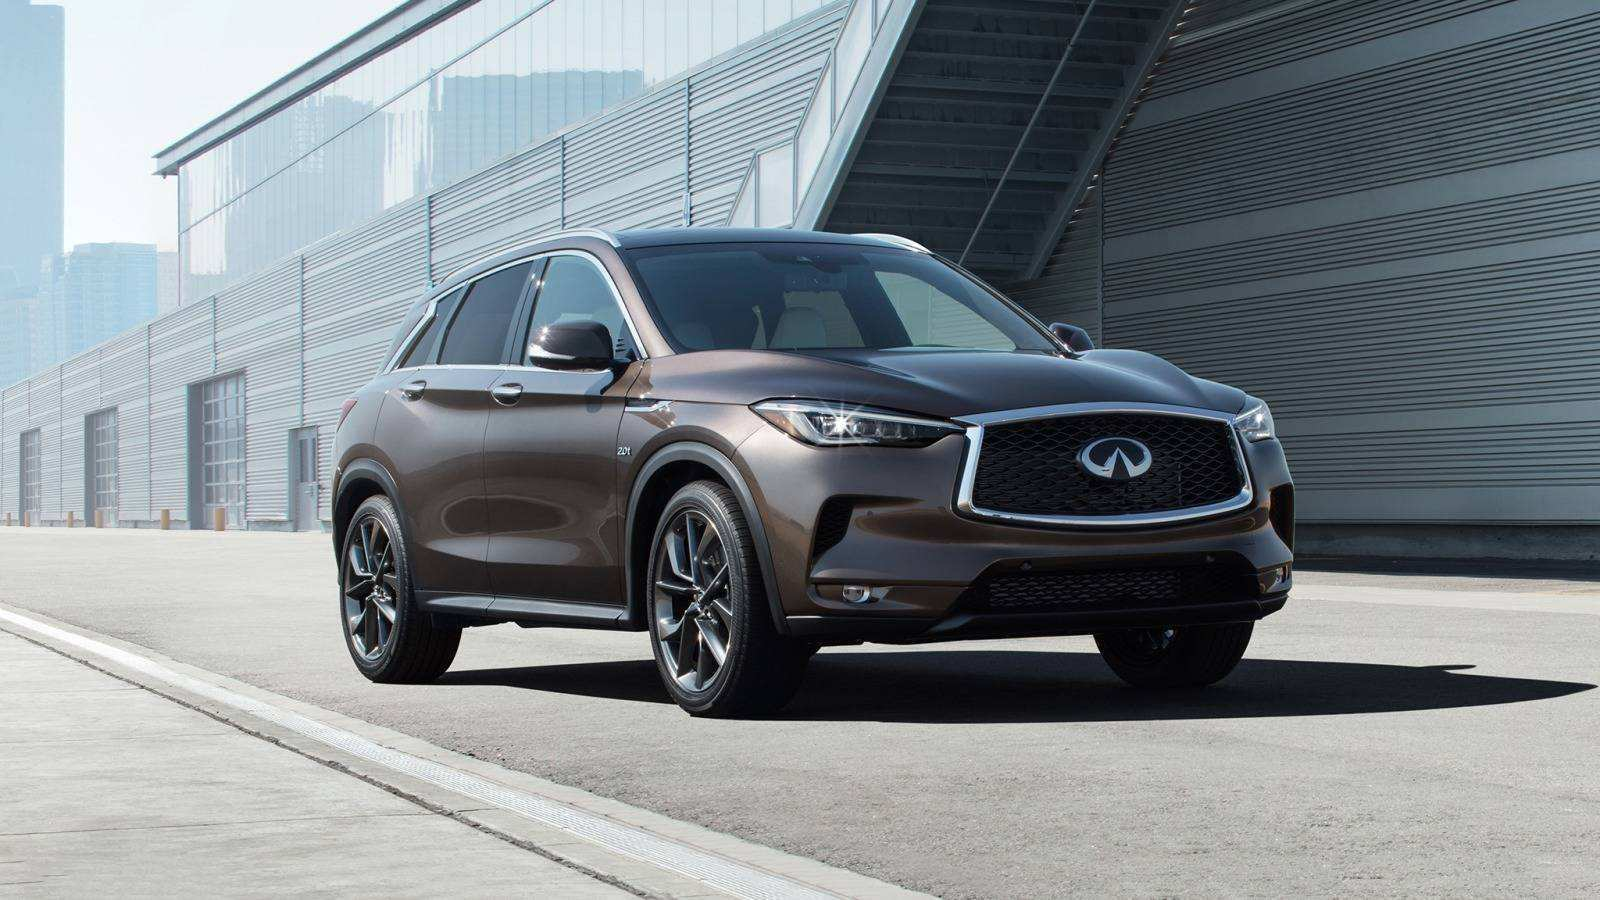 76 All New 2019 Infiniti Gx50 First Drive with 2019 Infiniti Gx50